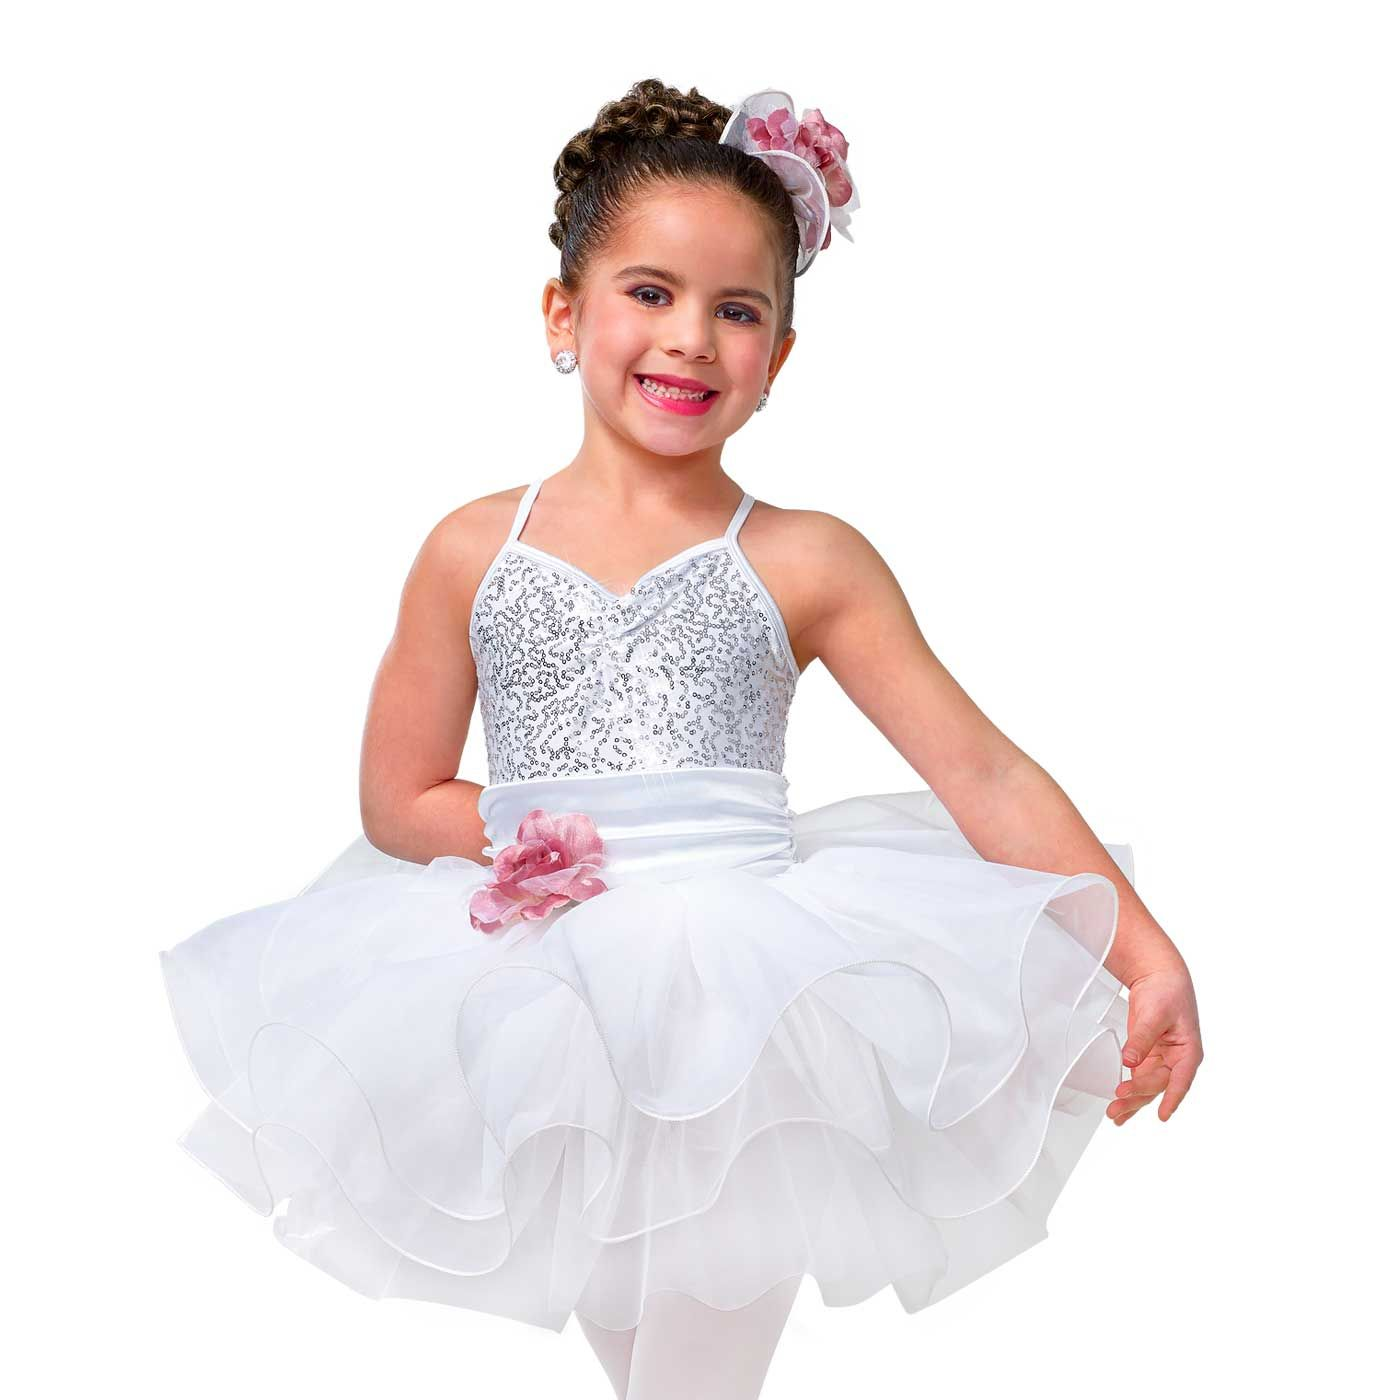 Curtain call sweet moments cute dance costumes